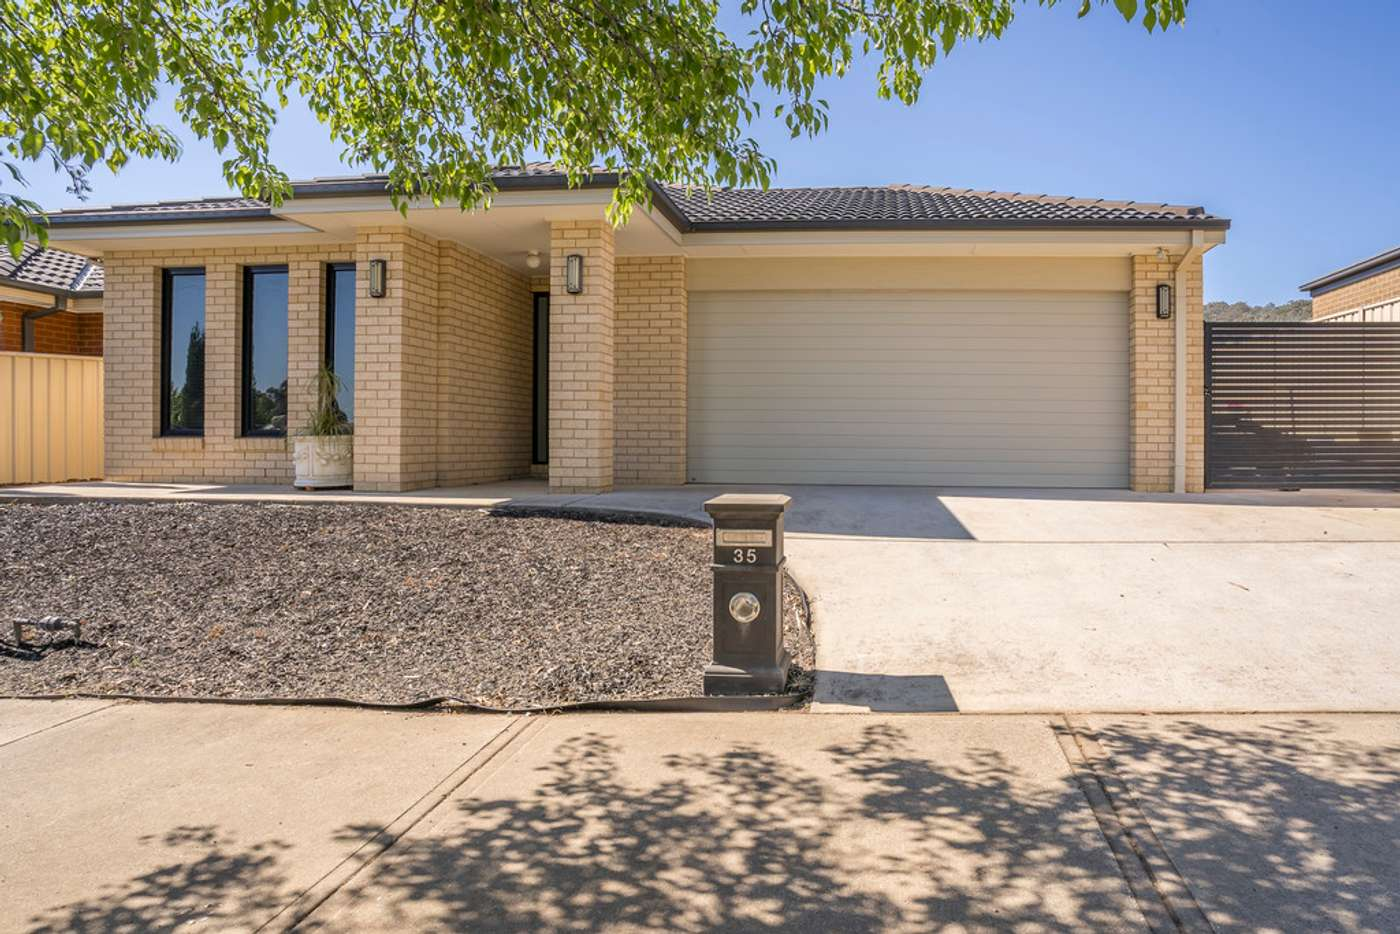 Main view of Homely house listing, 35 Victoria Cross Parade, Wodonga VIC 3690